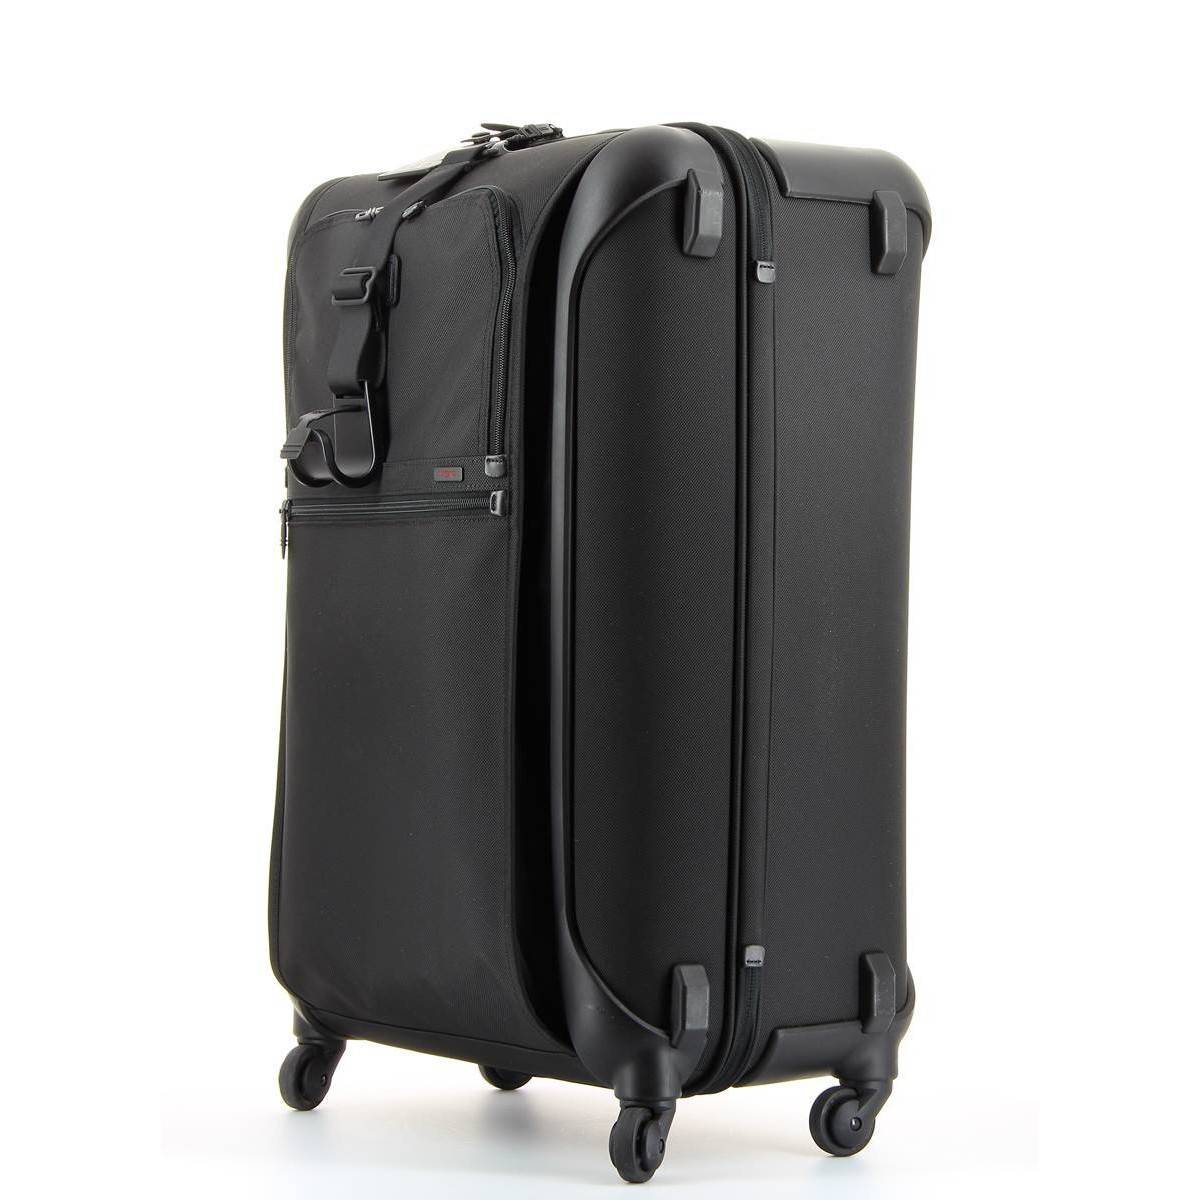 valise rigide grande taille bagages tumi stilbag. Black Bedroom Furniture Sets. Home Design Ideas